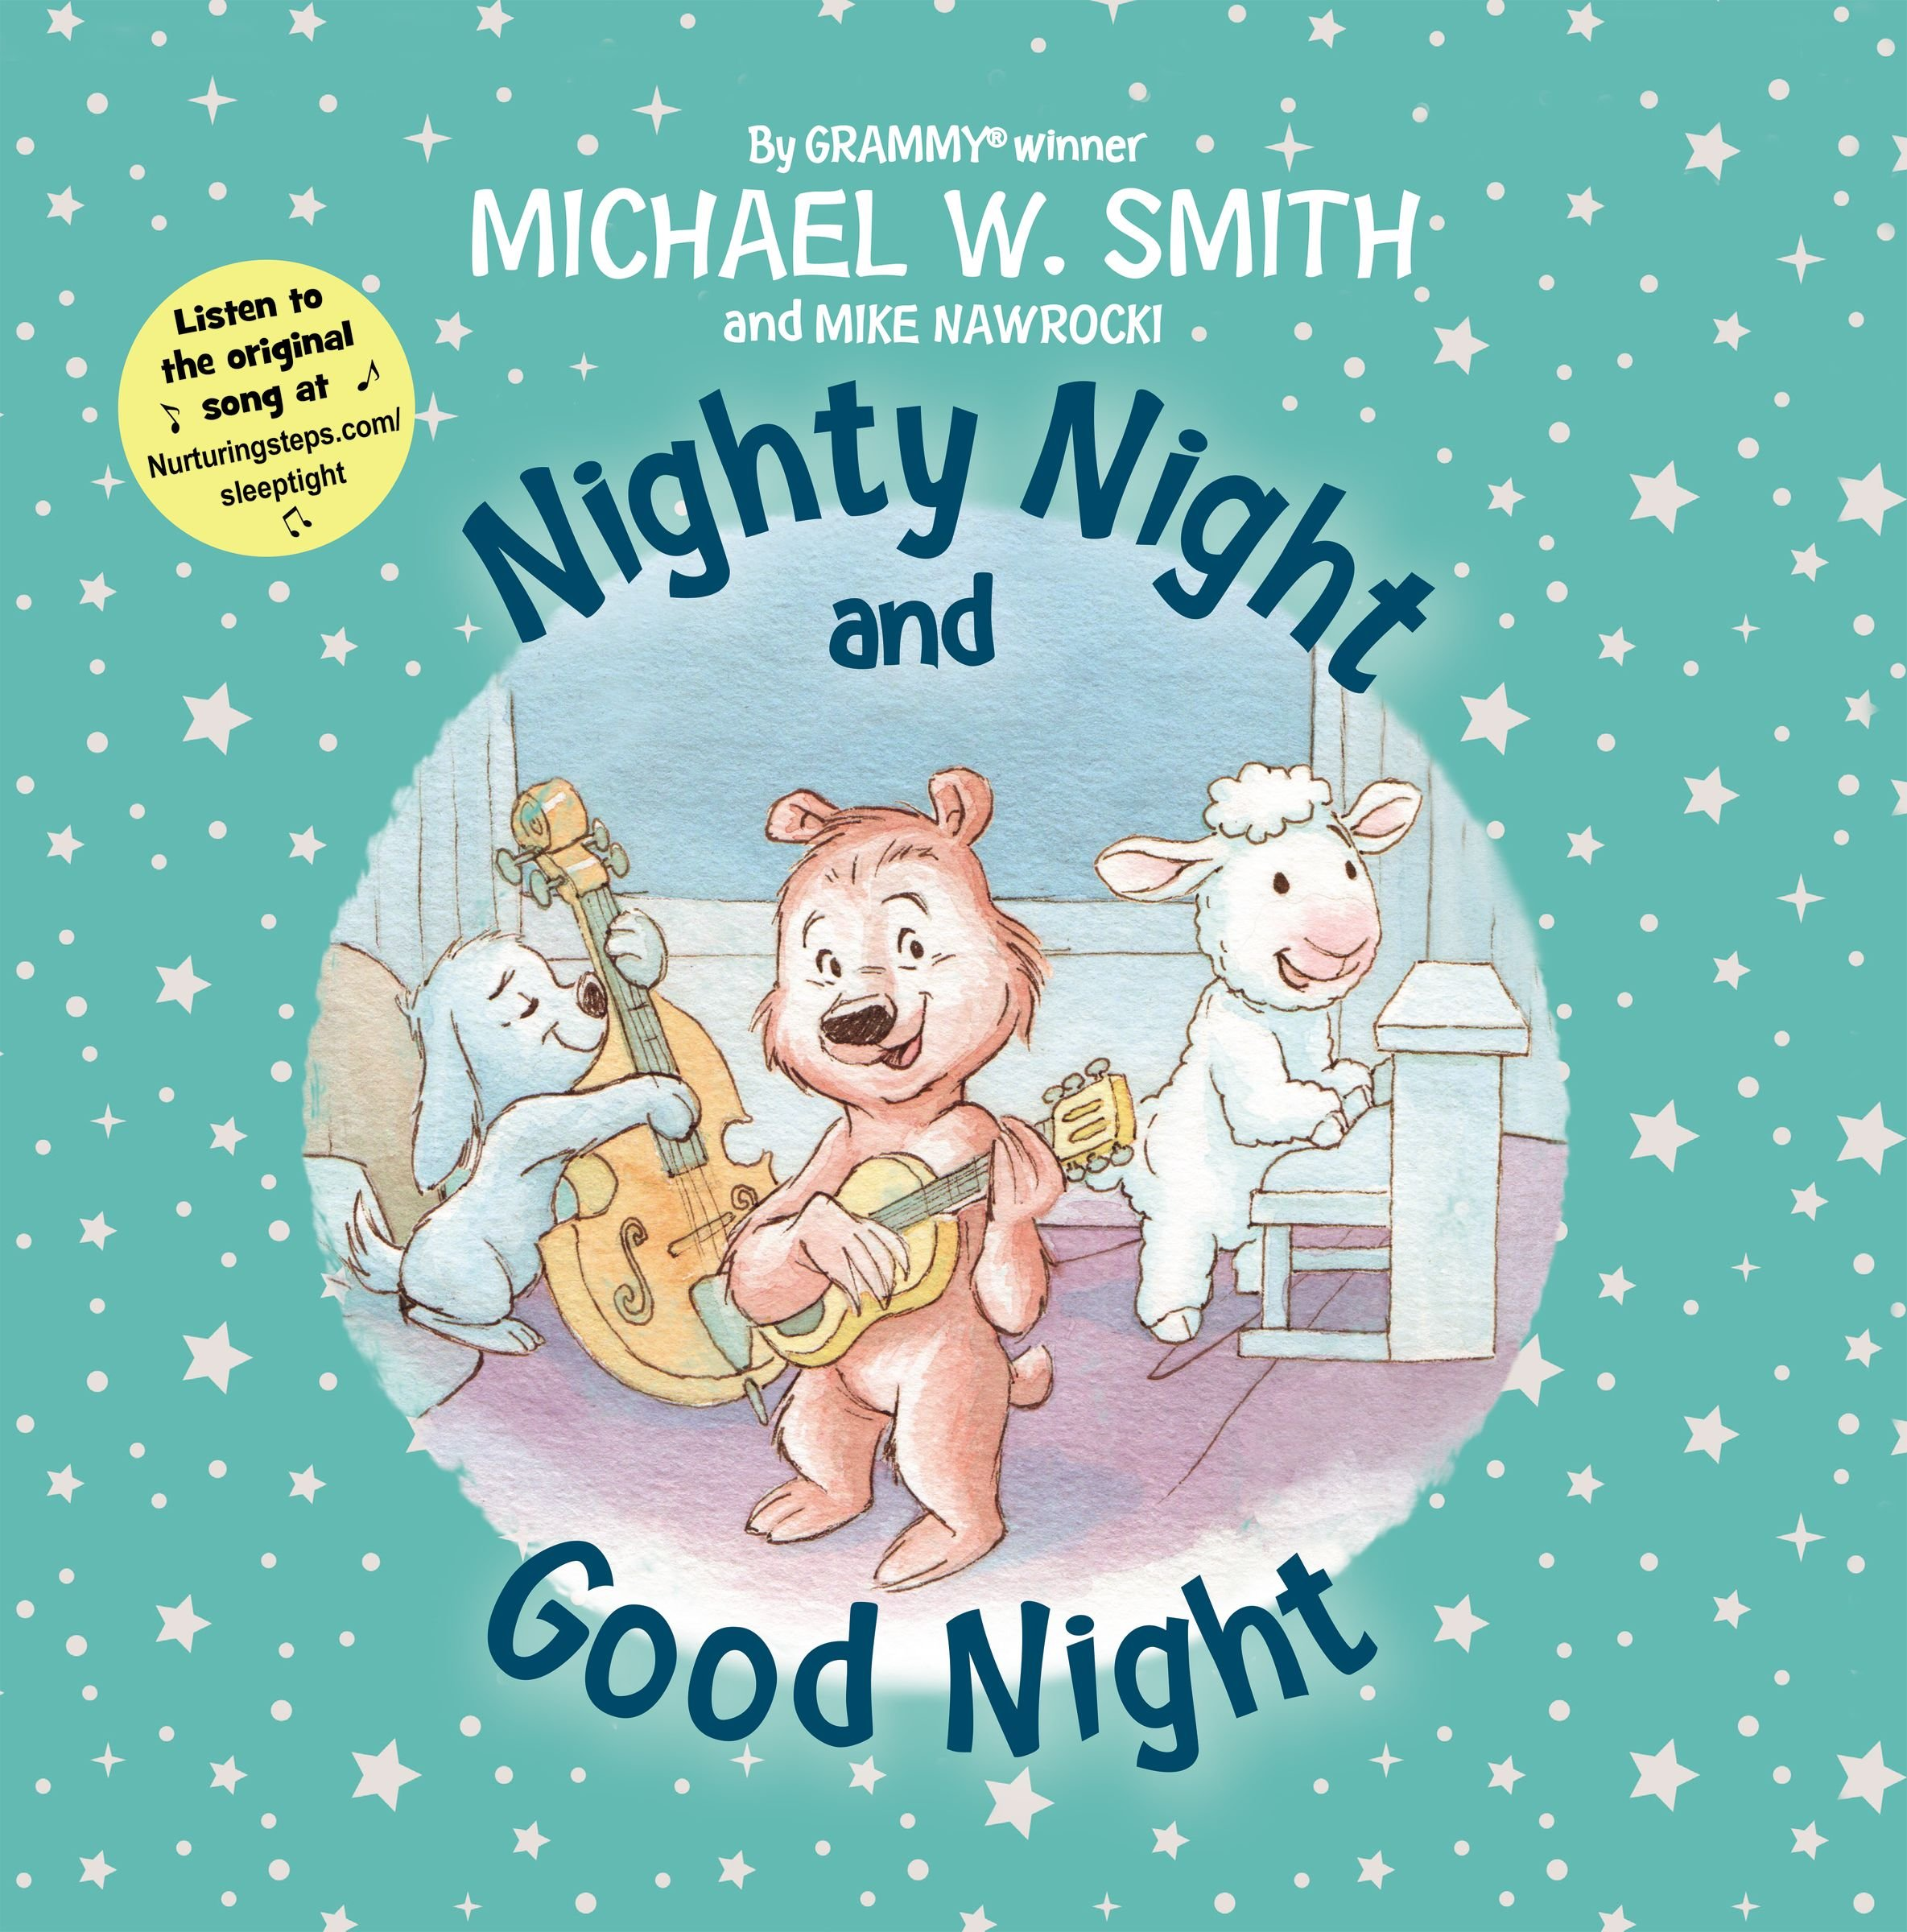 Image result for michael w smith nighty night and good night